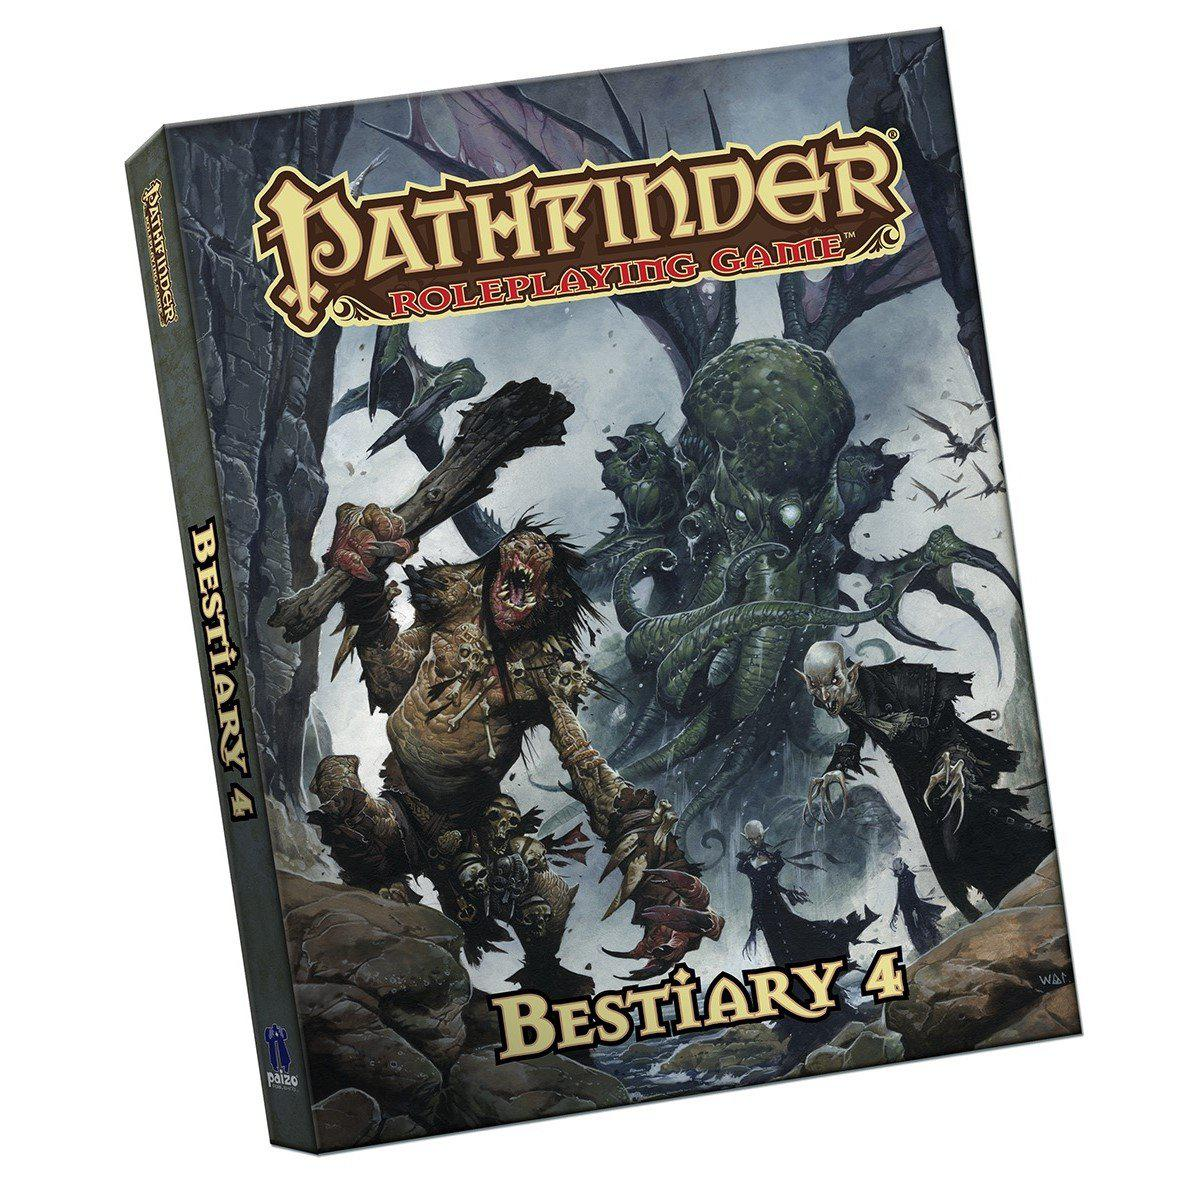 Pathfinder Roleplaying Game: Bestiary 4 - The Sword & Board